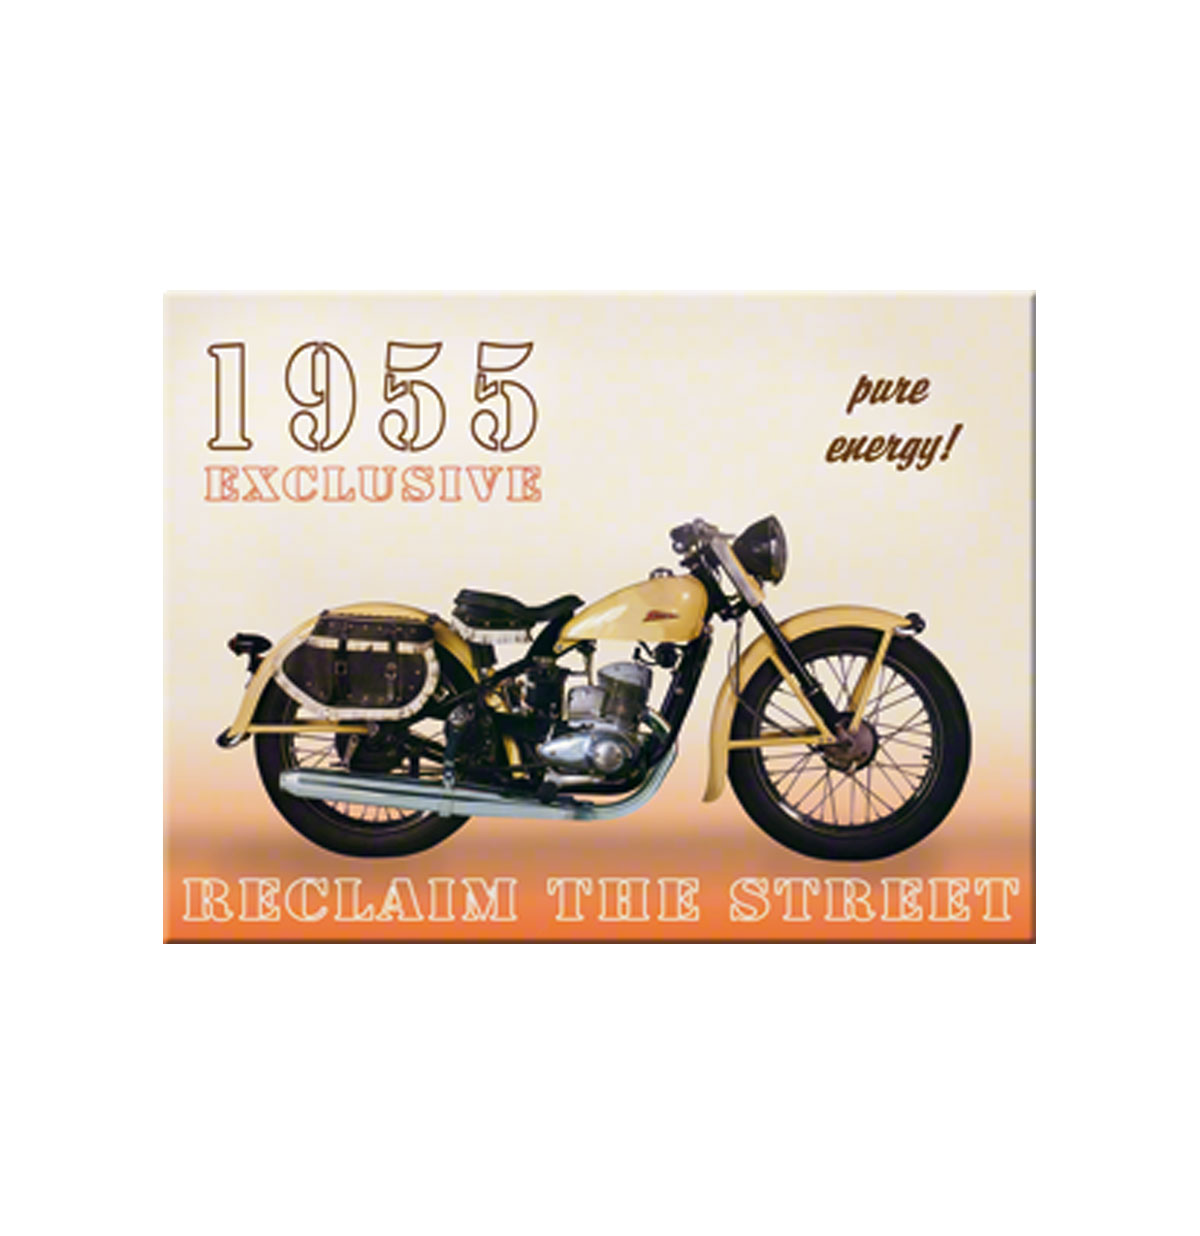 1955 Exclusive Motorcycle Magneet